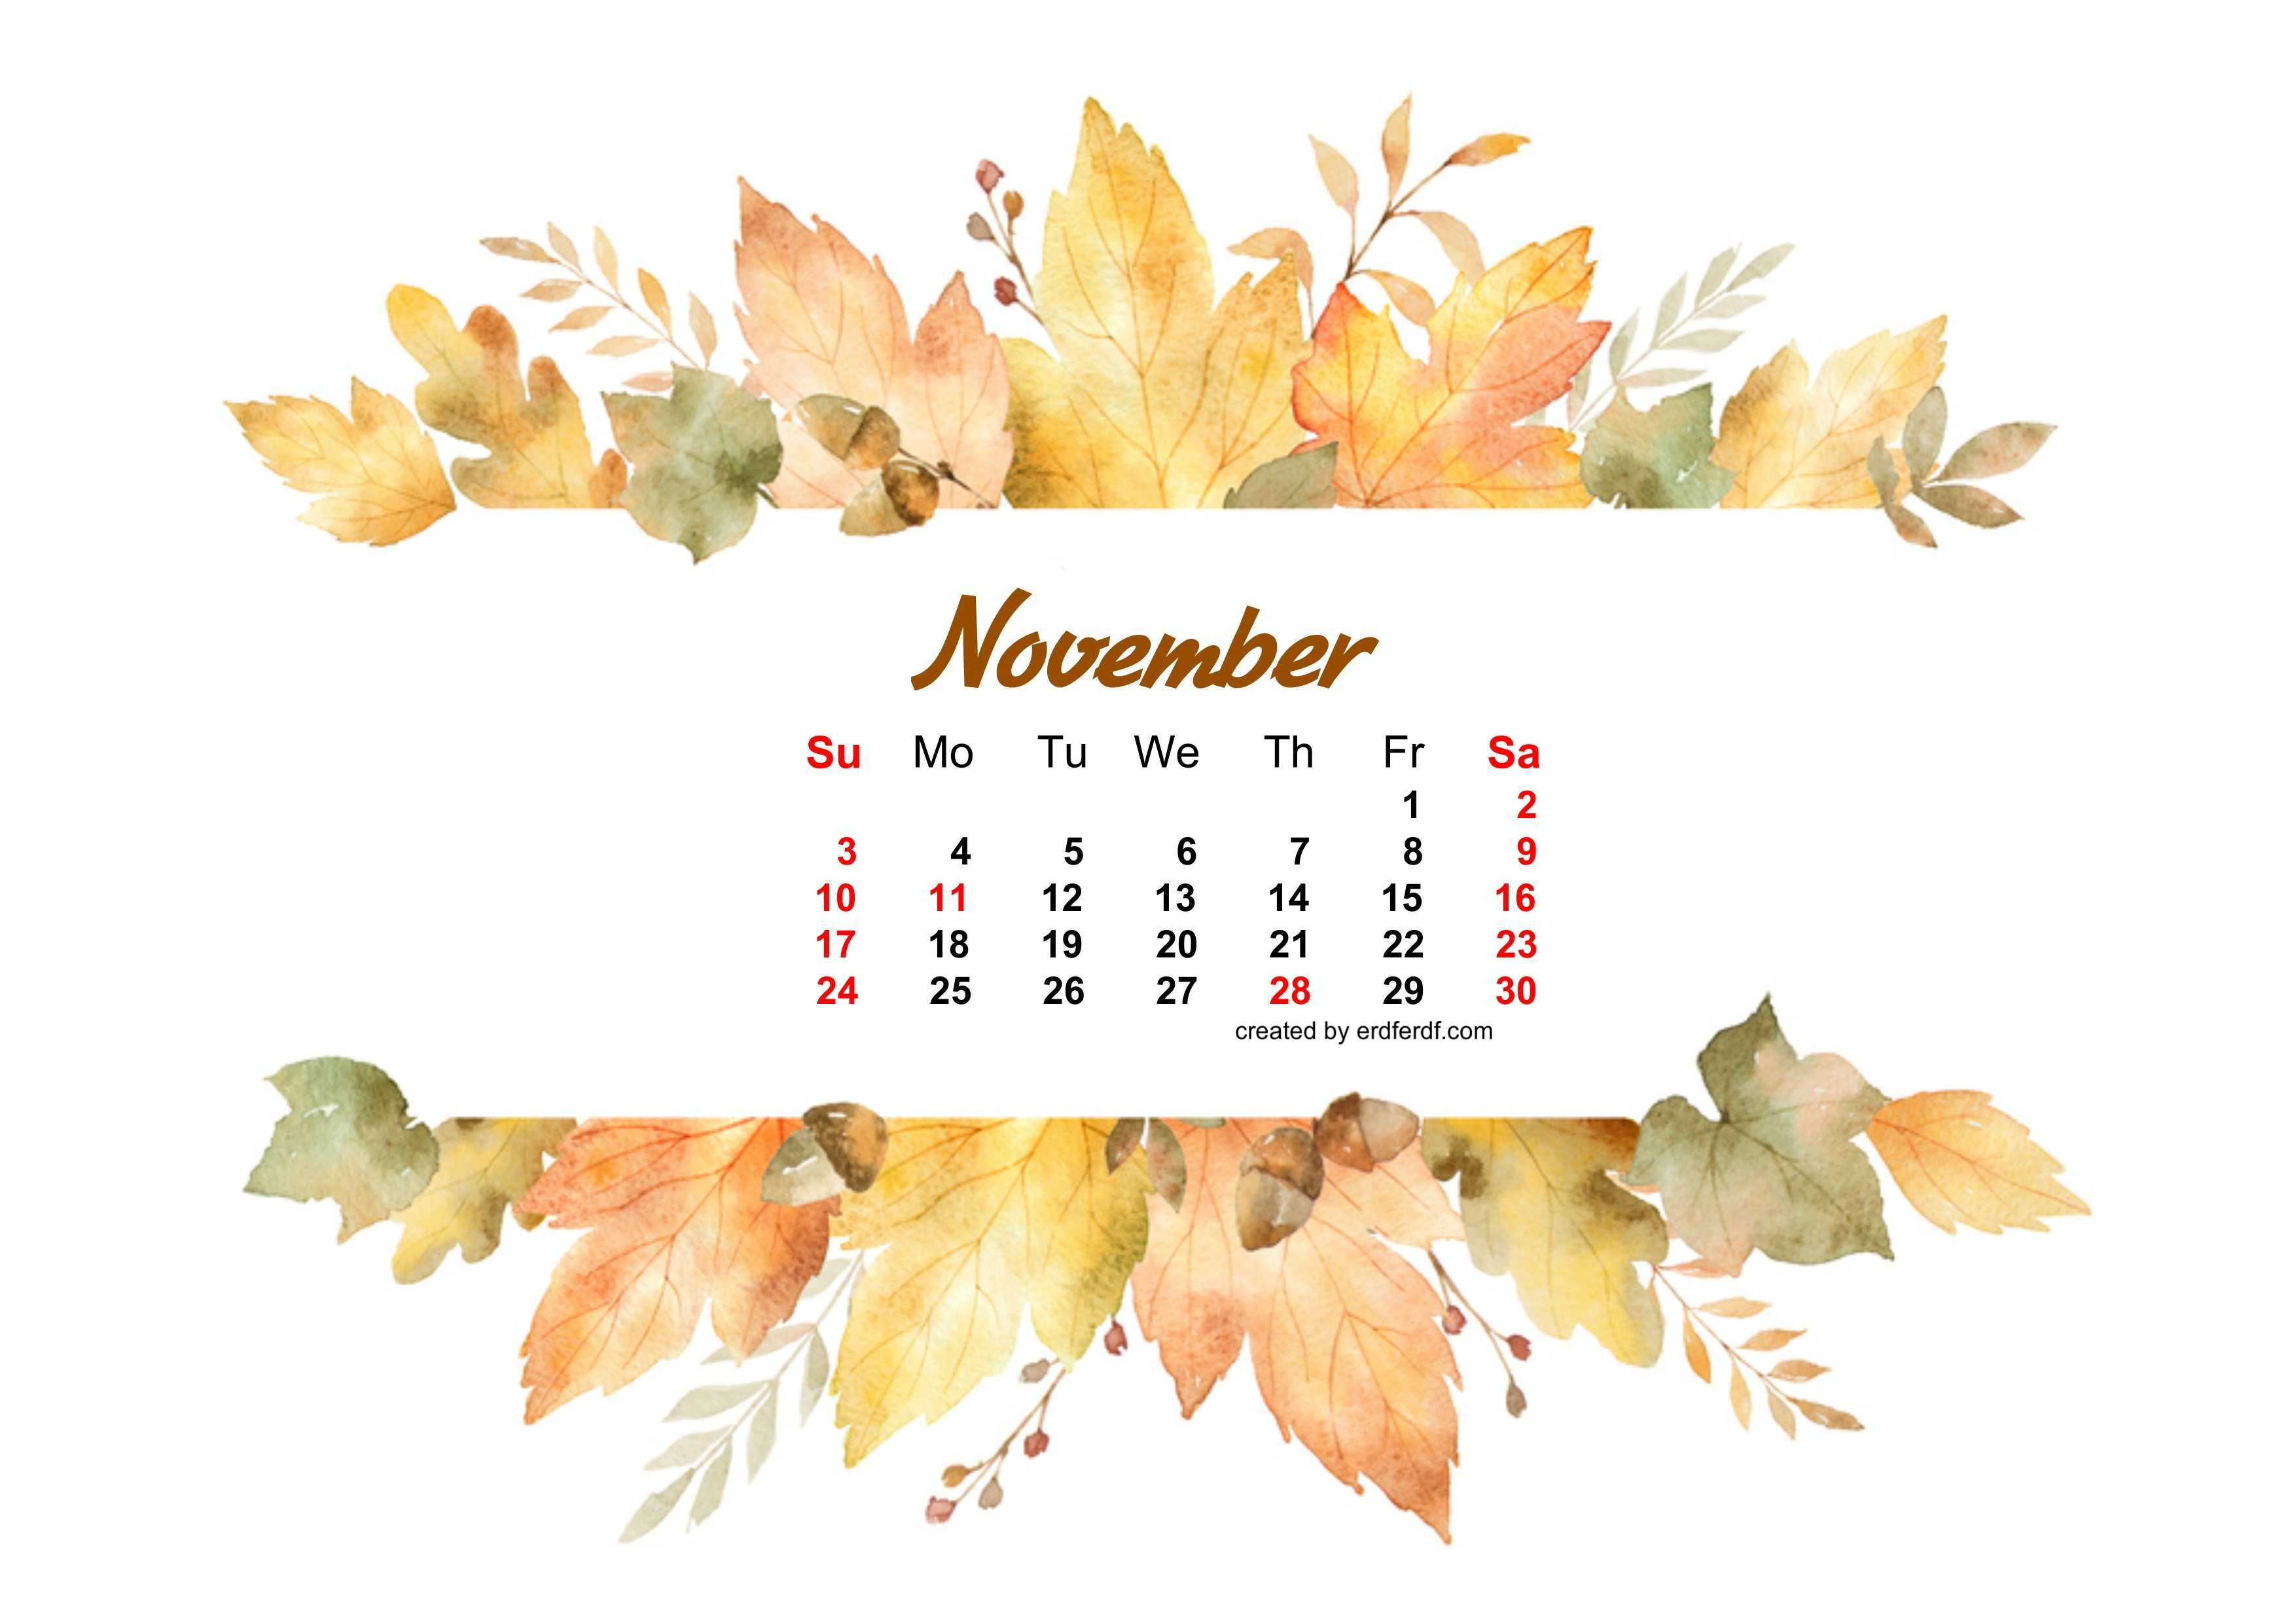 Watercolor Leaf Dried November 2019 Calendar Picture Autumn Leaves Watercolor Banner 2977002 Hd Wallpaper Backgrounds Download